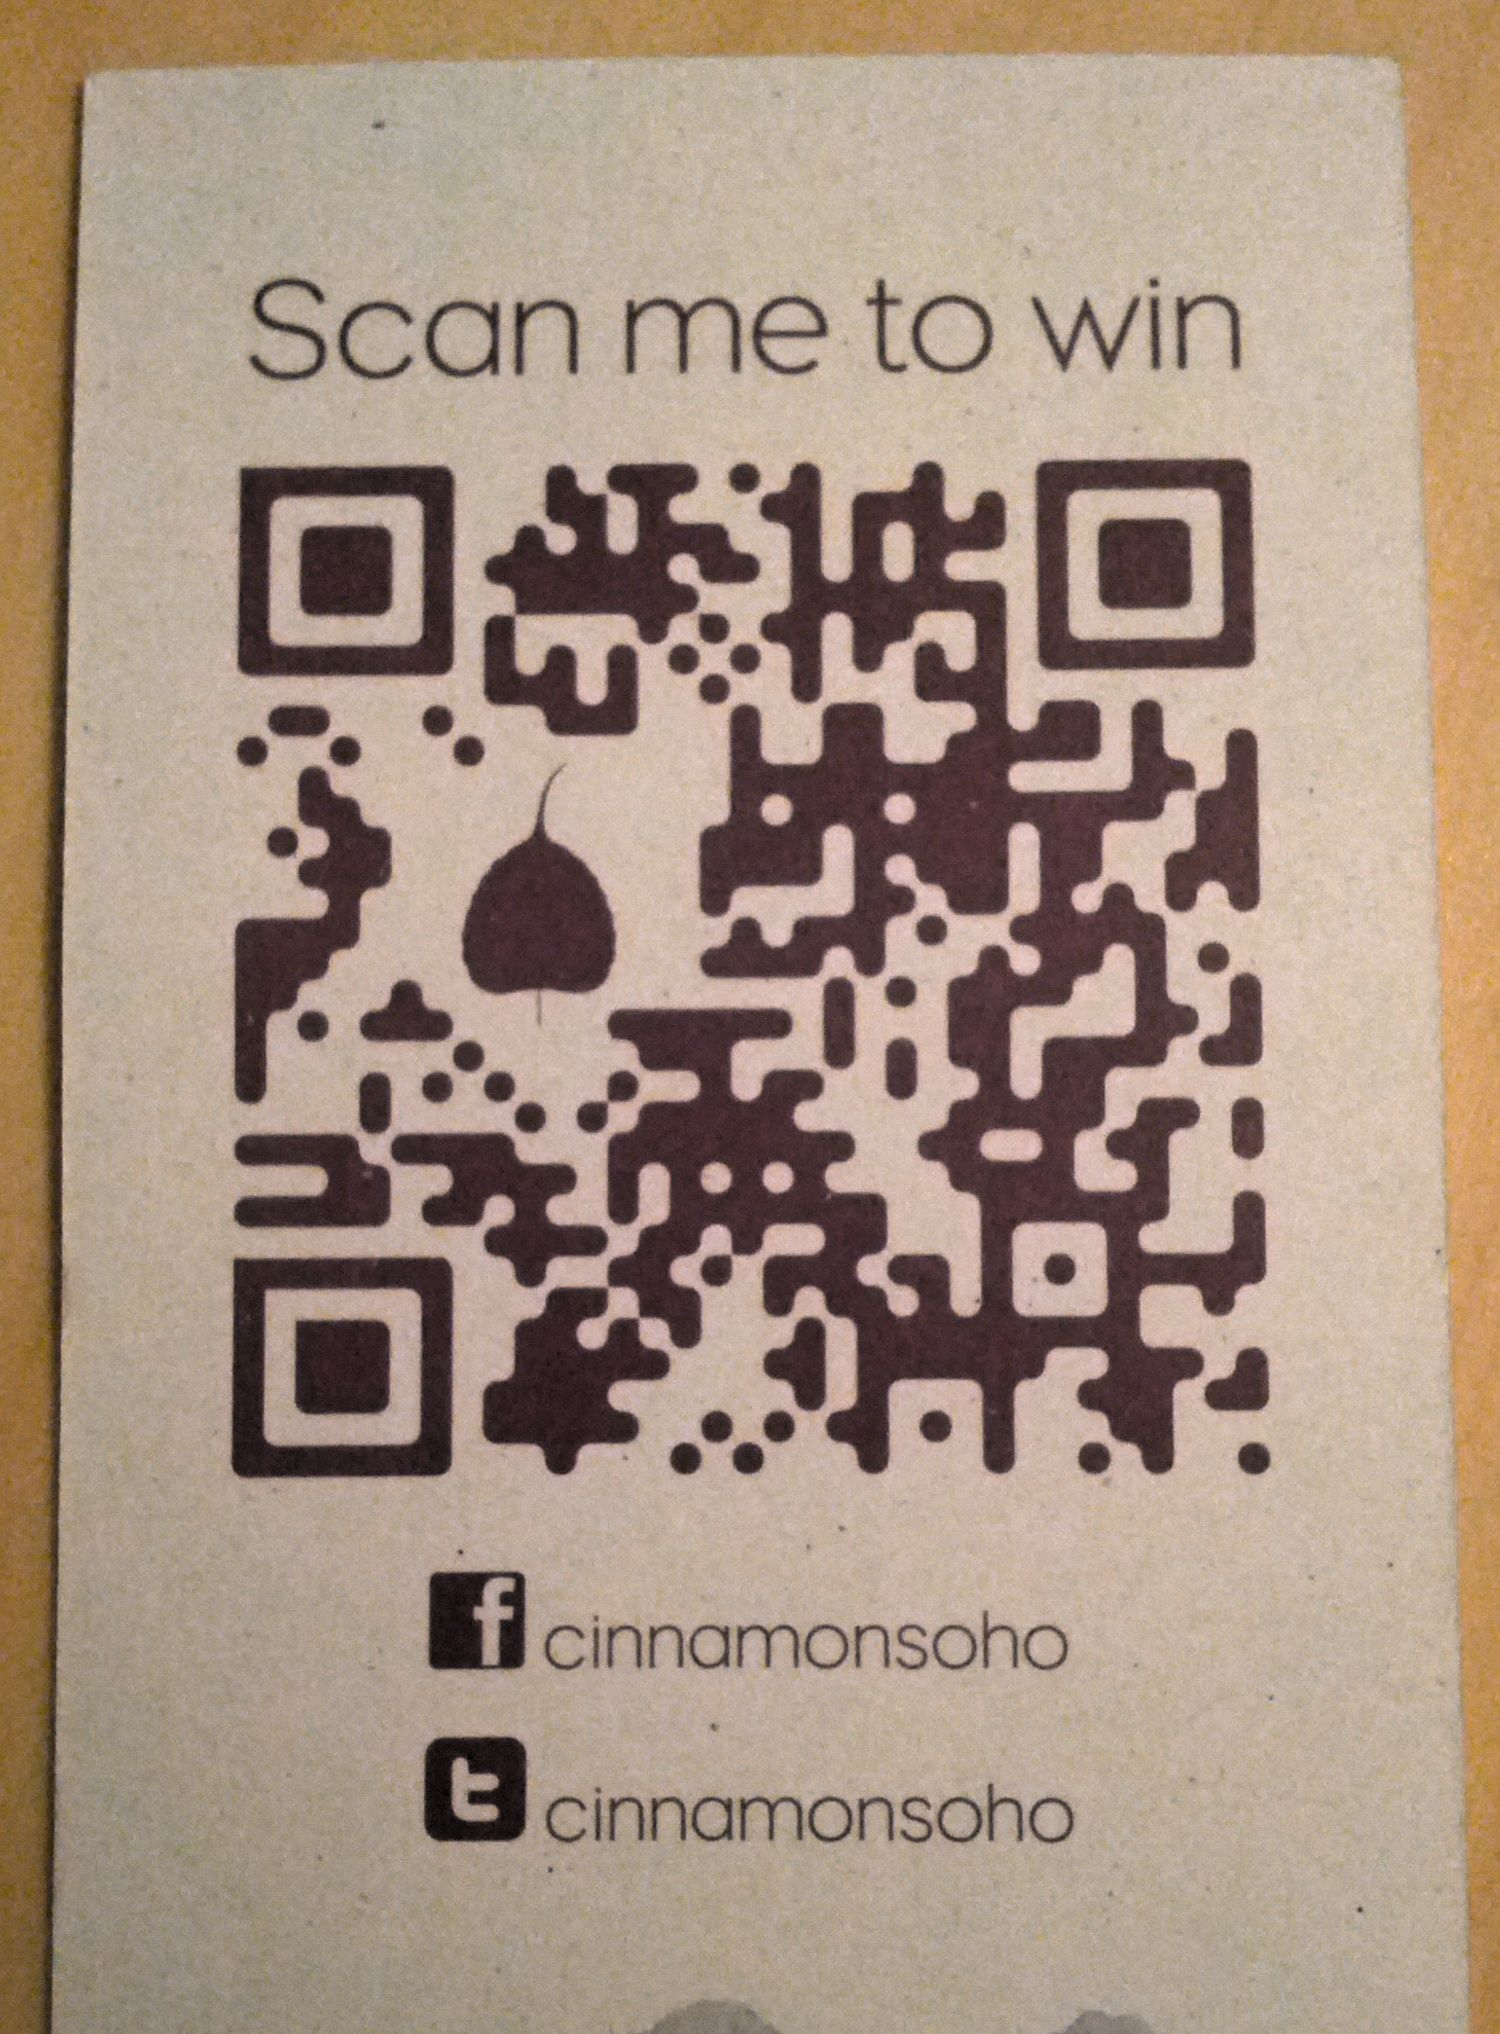 Qr code on the back of a business card for cinnamon soho qr code on the back of a business card for cinnamon soho colourmoves Gallery